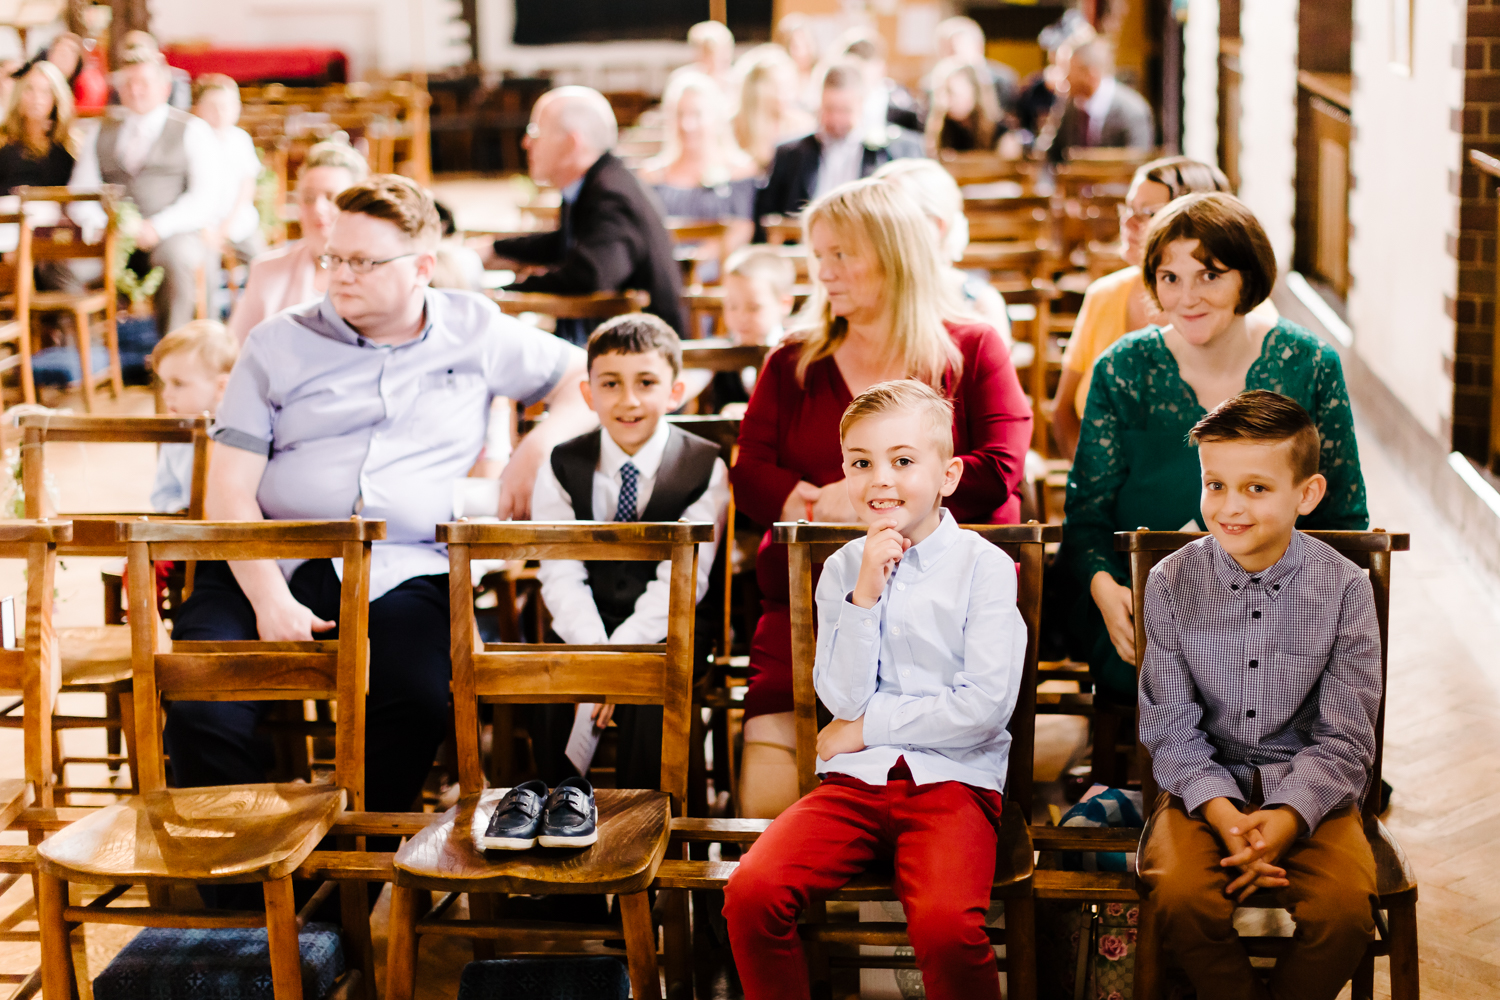 north-wales-wedding-photographer-161.jpg